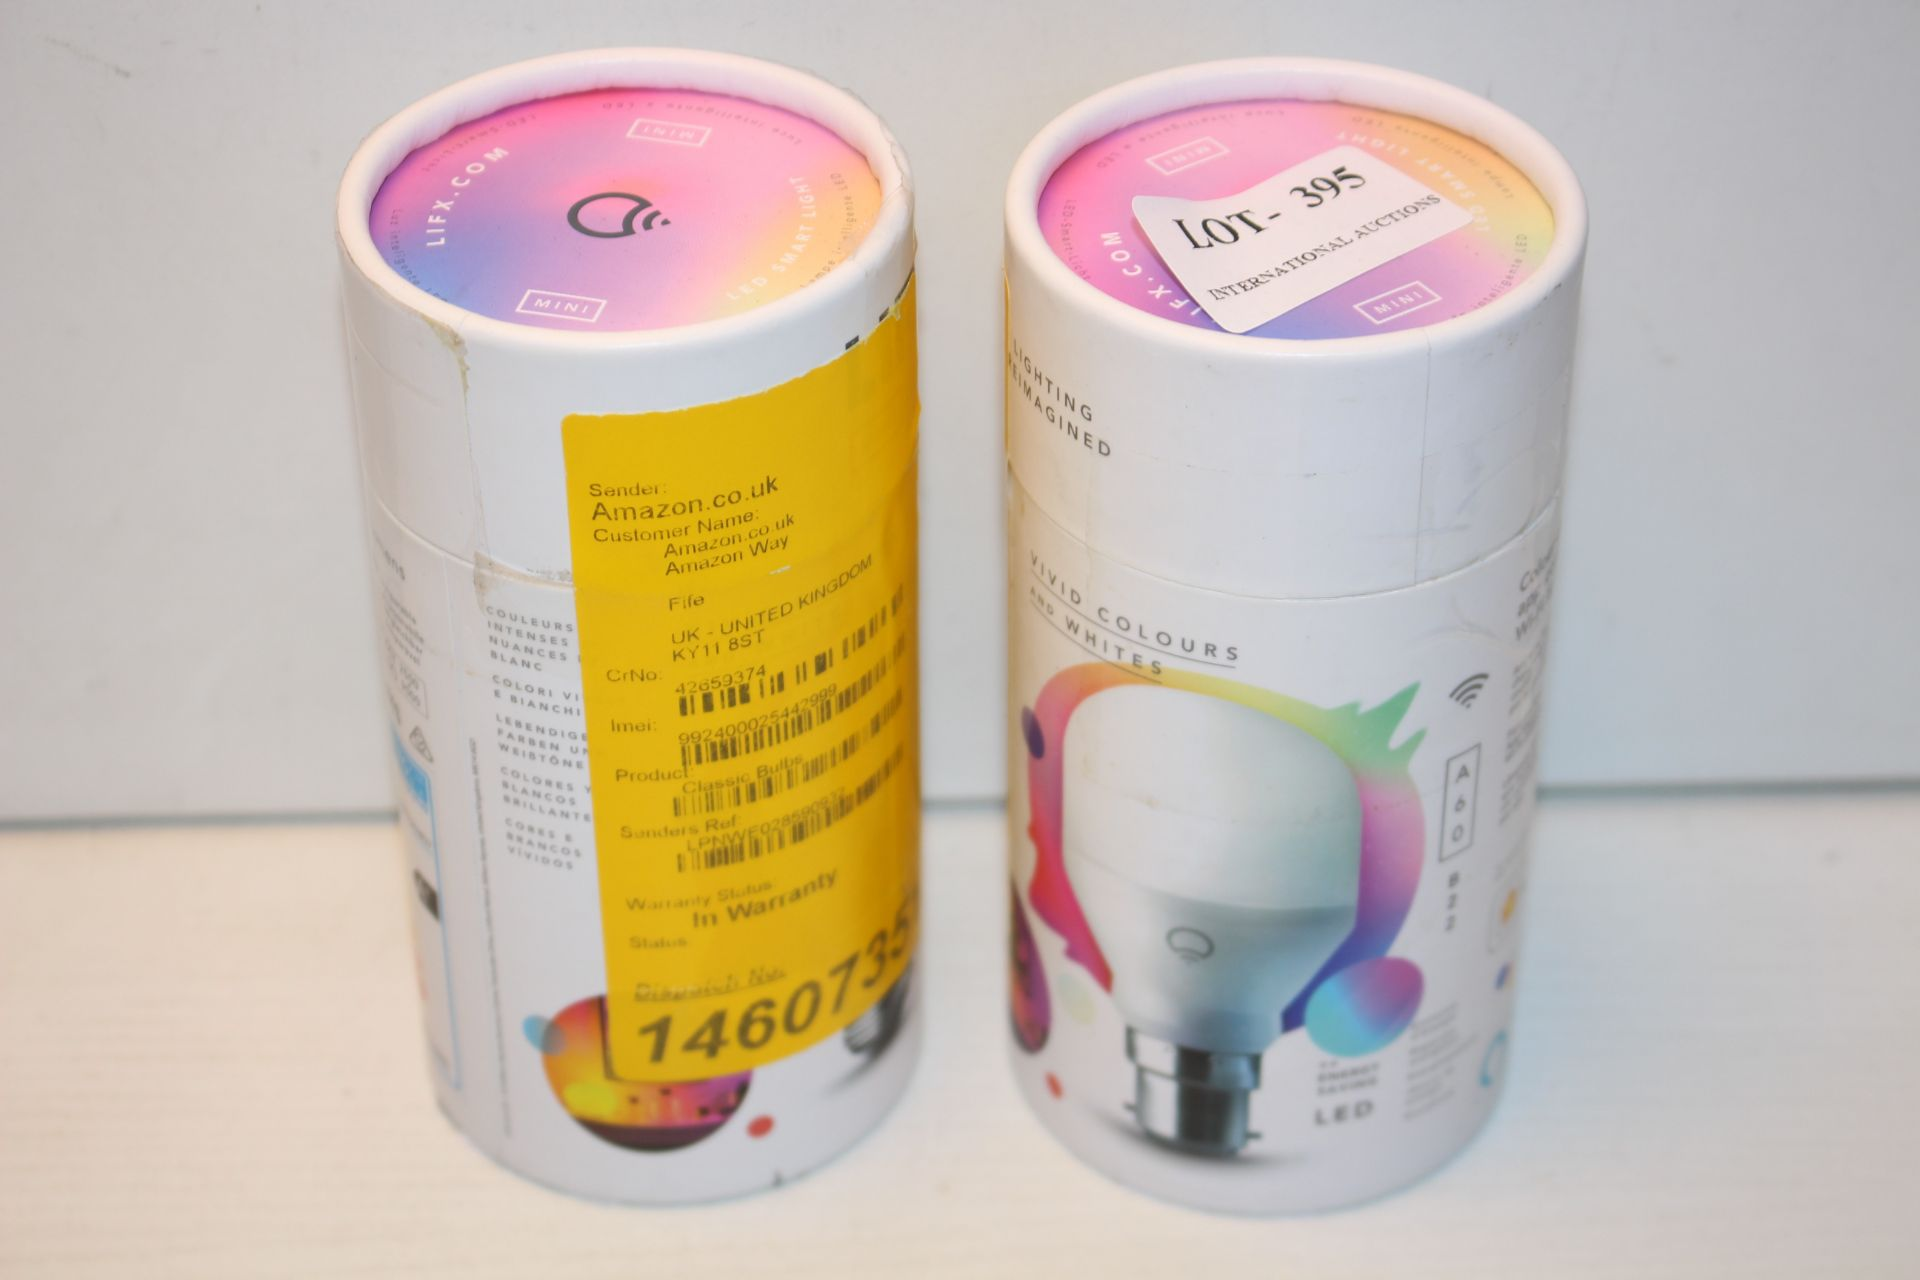 2X BOXED LIFX MINI COLOUR CHANGING APP CONTROLLED WIFI LIGHT BULBS COMBINED RRP £66.00Condition